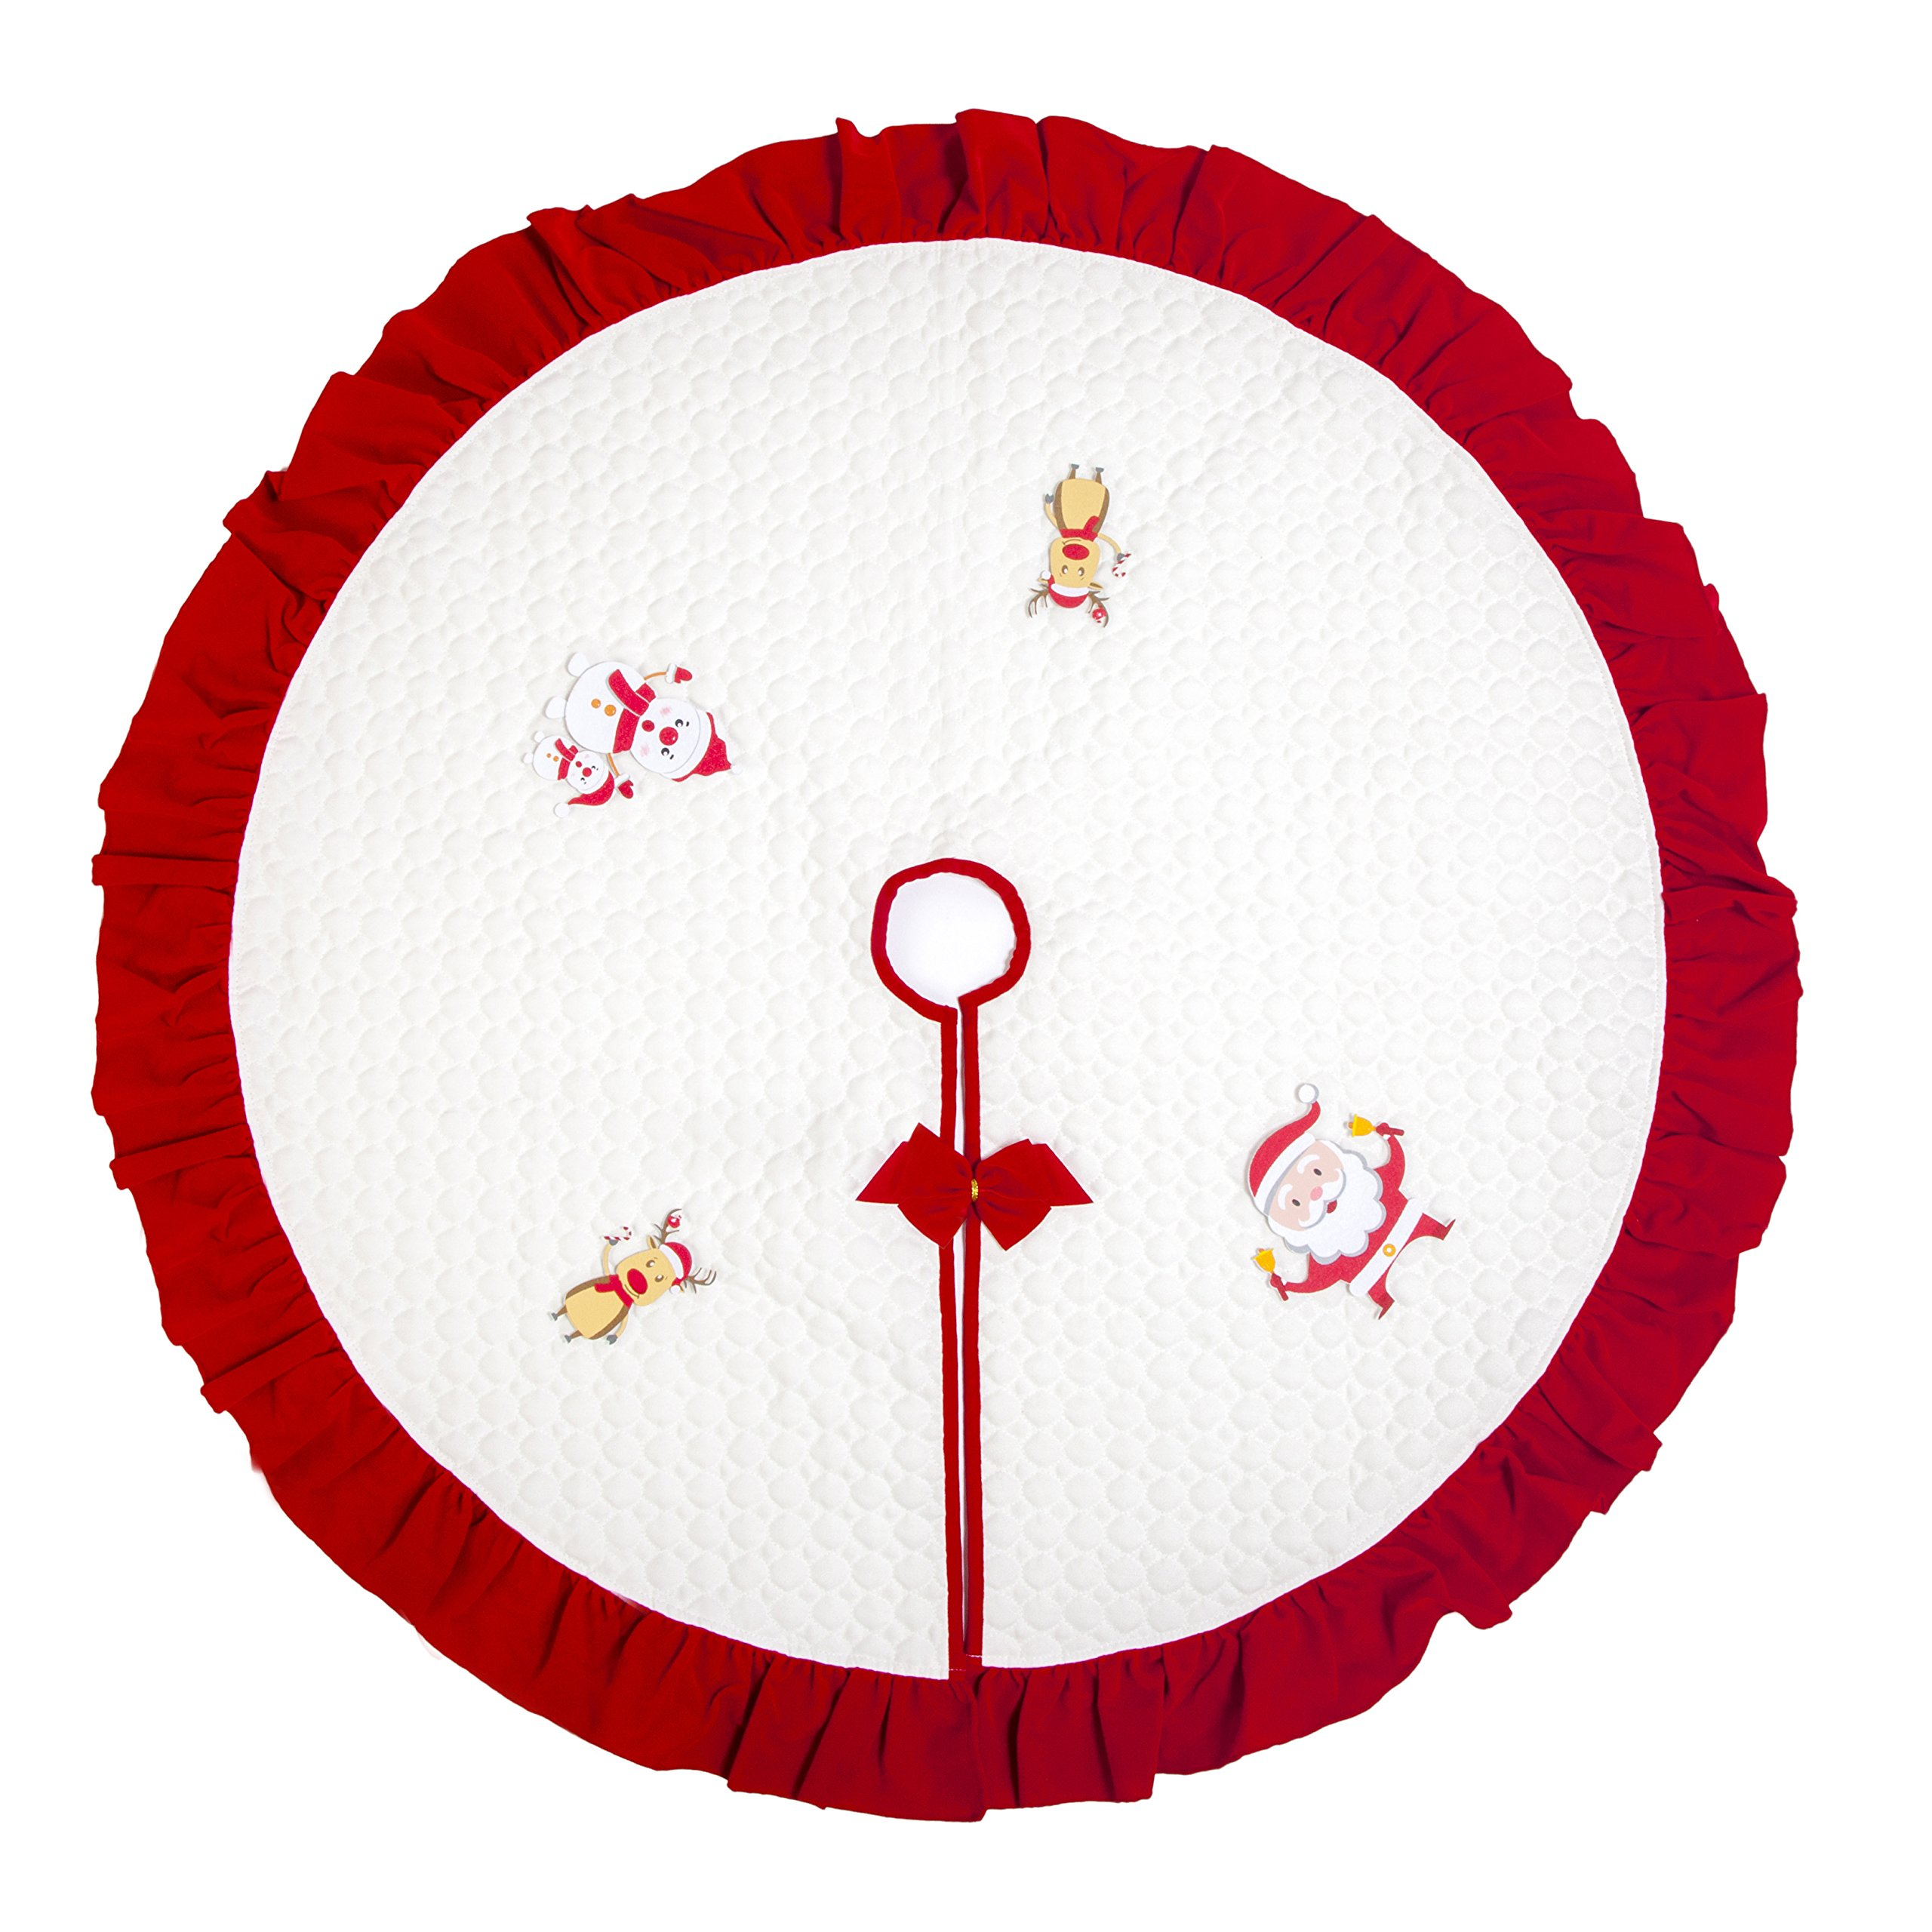 Hffls Christmas Tree Skirt 36 Inch White Double Layers Cotton Padded Tree Skirt With Christmas Red Bow Ruffle Edge Christmas Decorations Indoor Outdoor